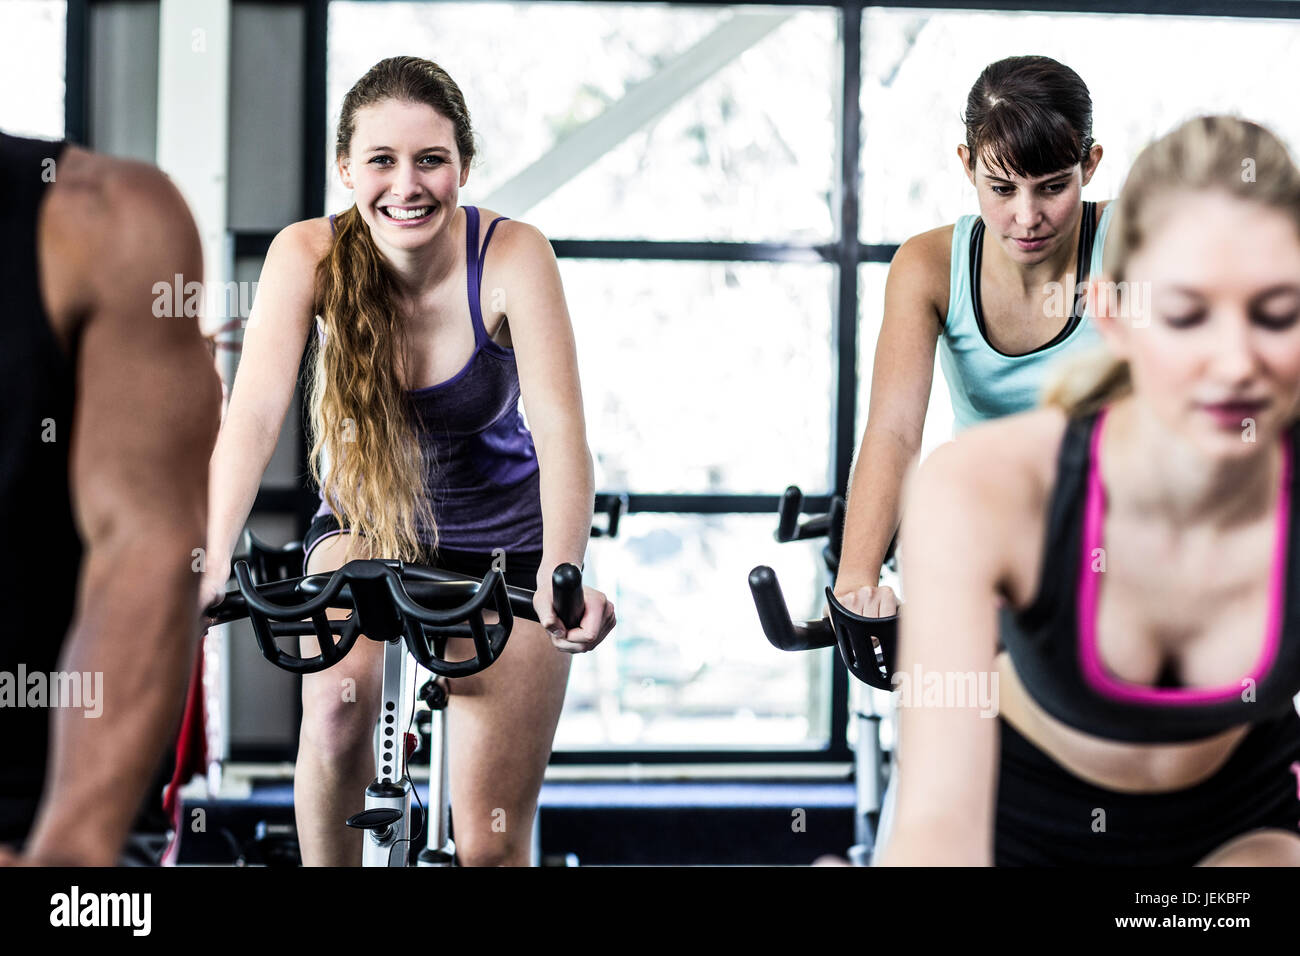 Fit women working out at spinning class - Stock Image